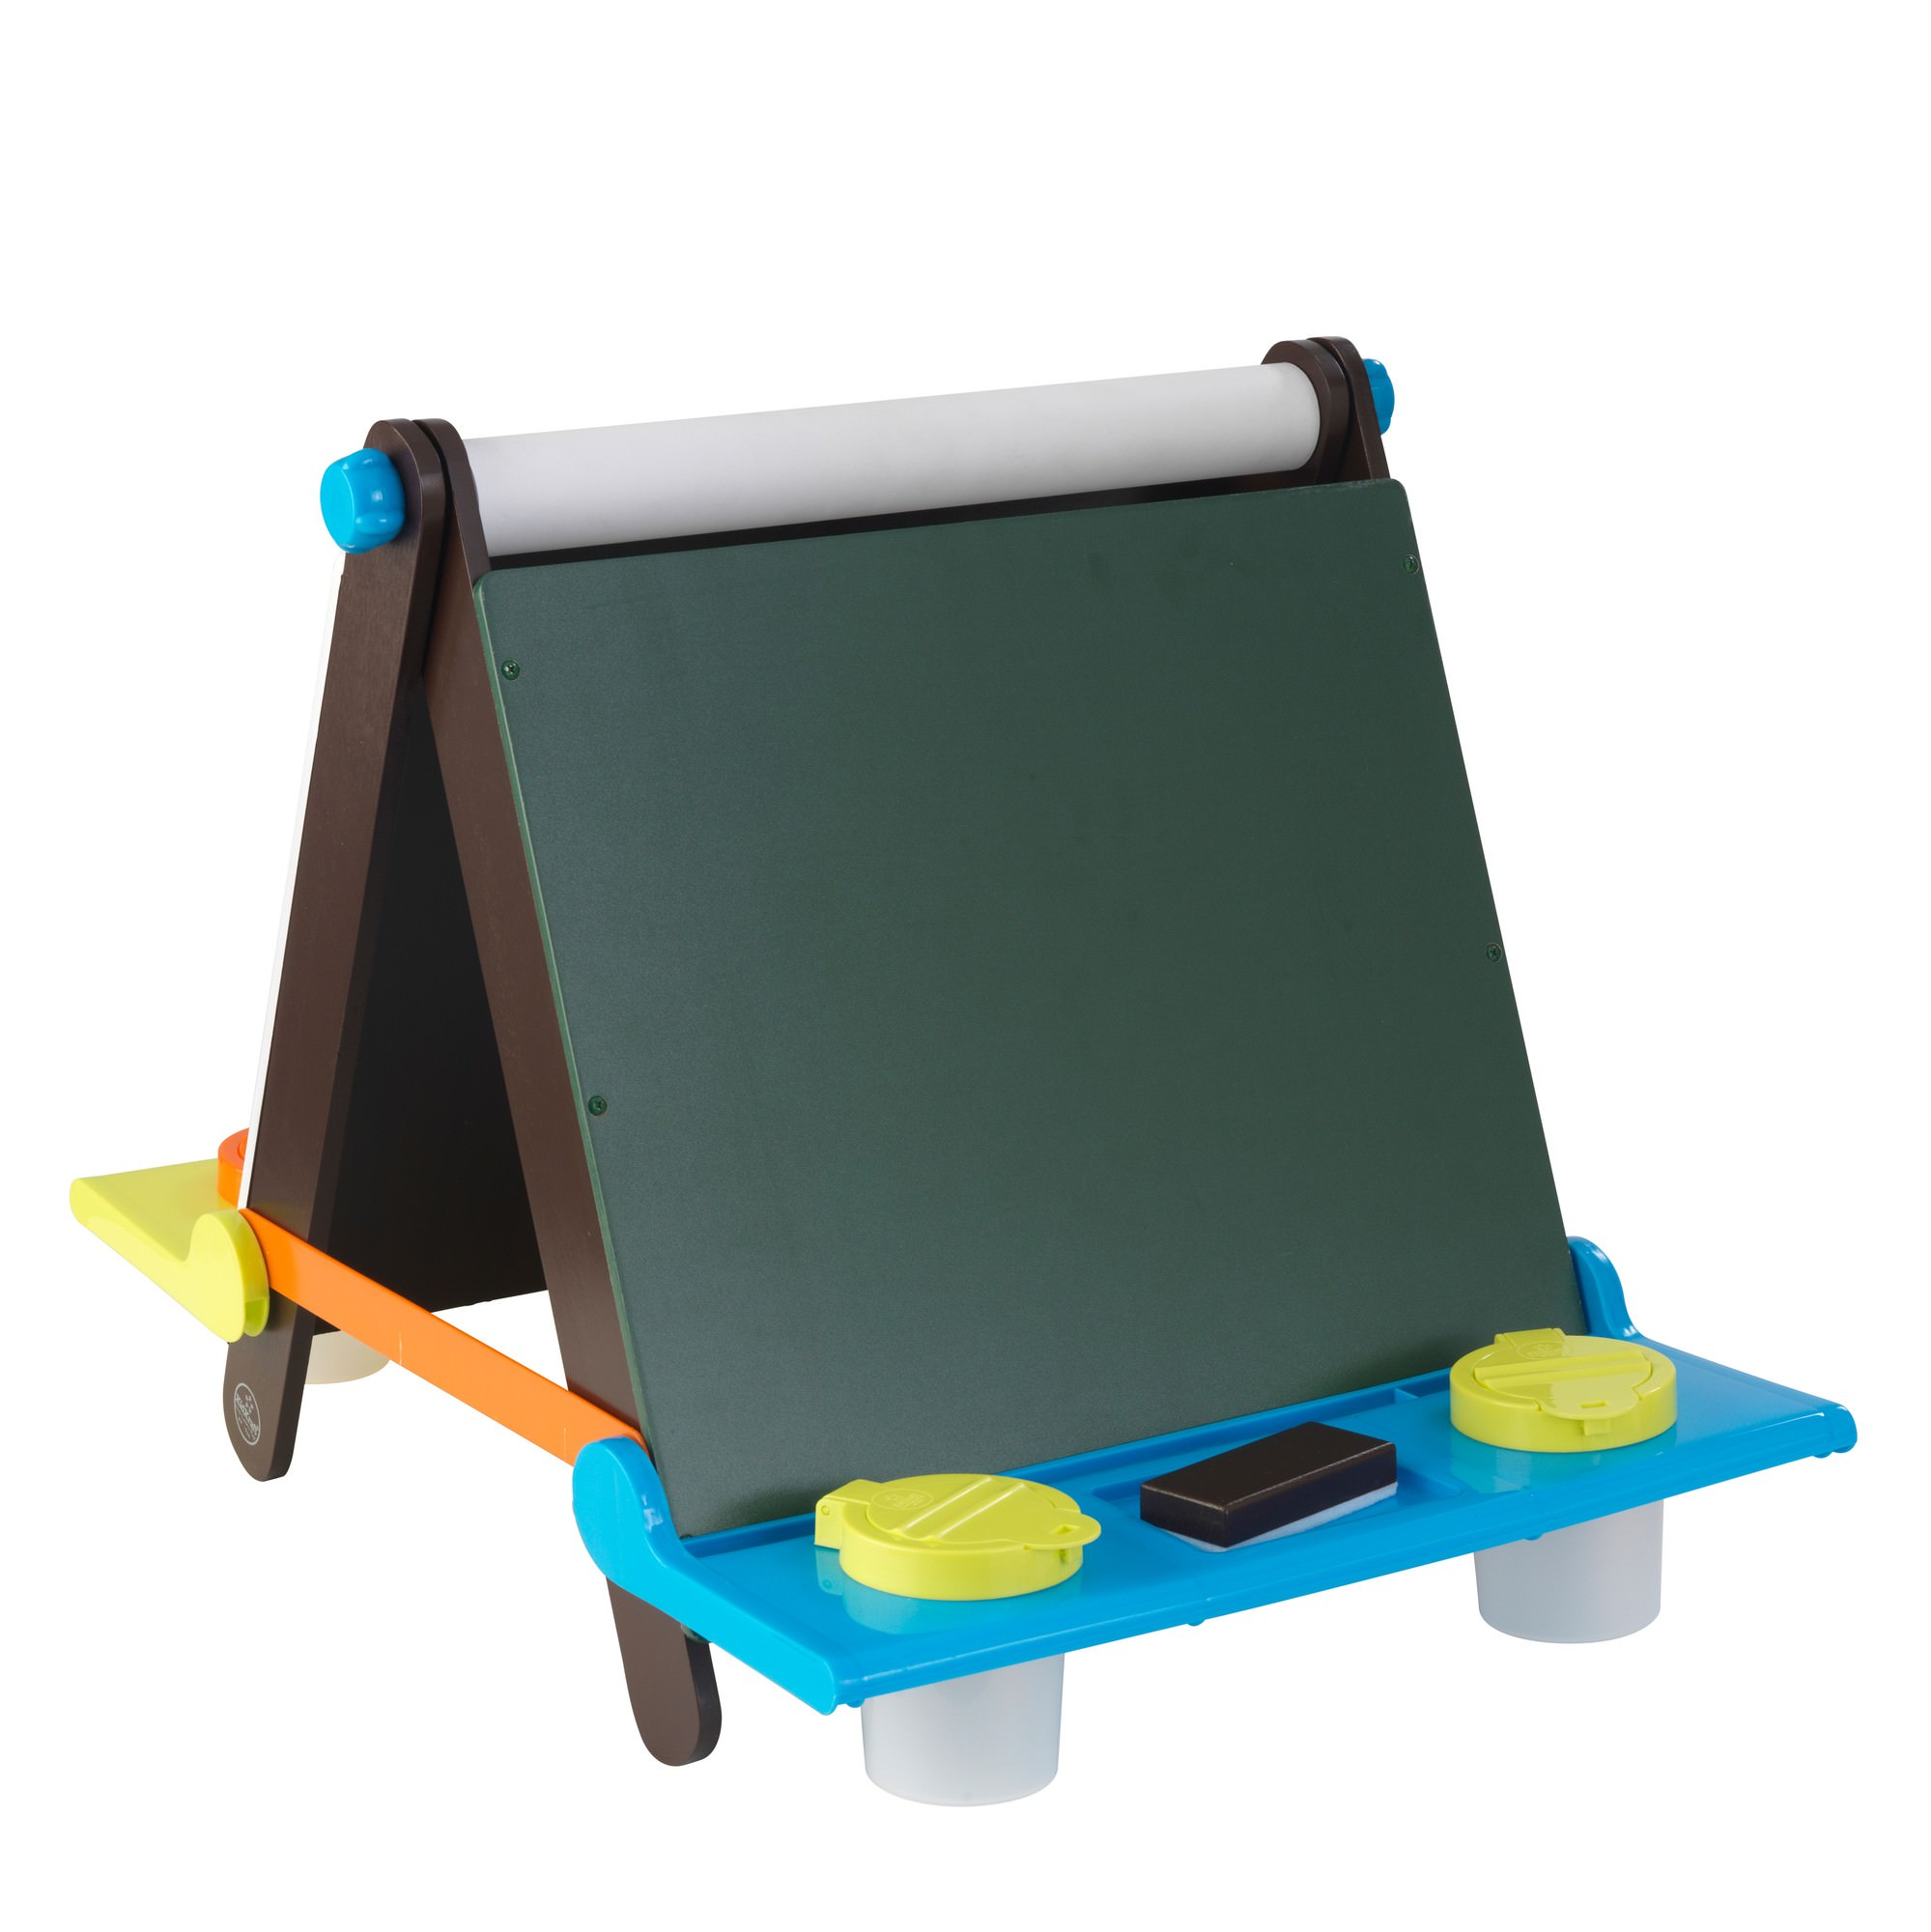 KidKraft Tabletop Easel, Espresso with Brights